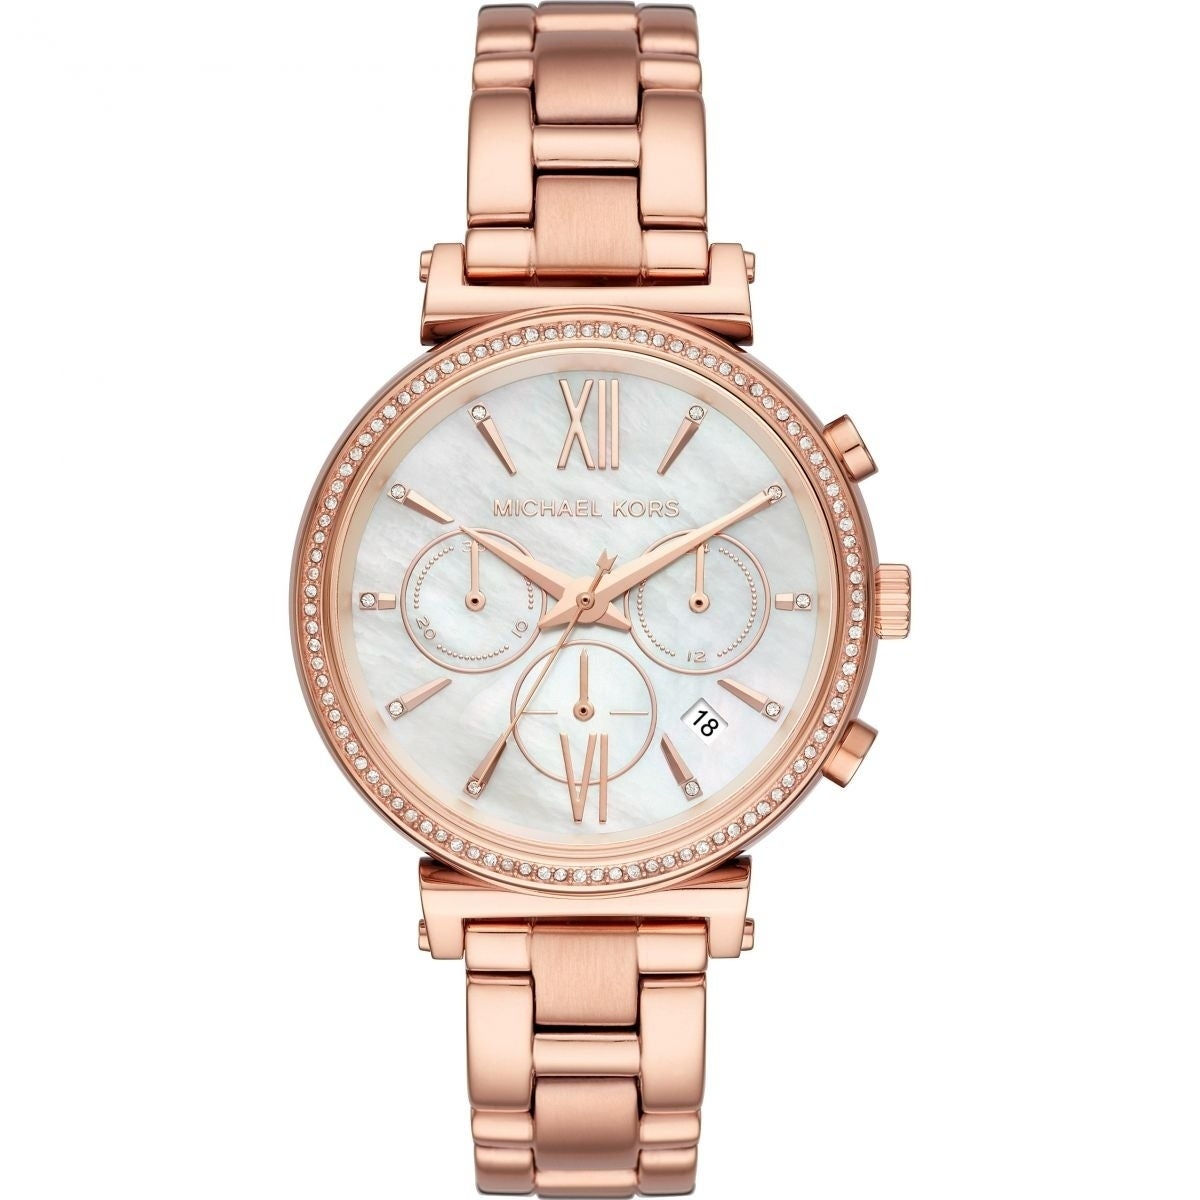 Michael Kors Womens  Sofie Chronograph Mother of Pearl Dial Rose Gold Stainless Steel Bracelet Watch